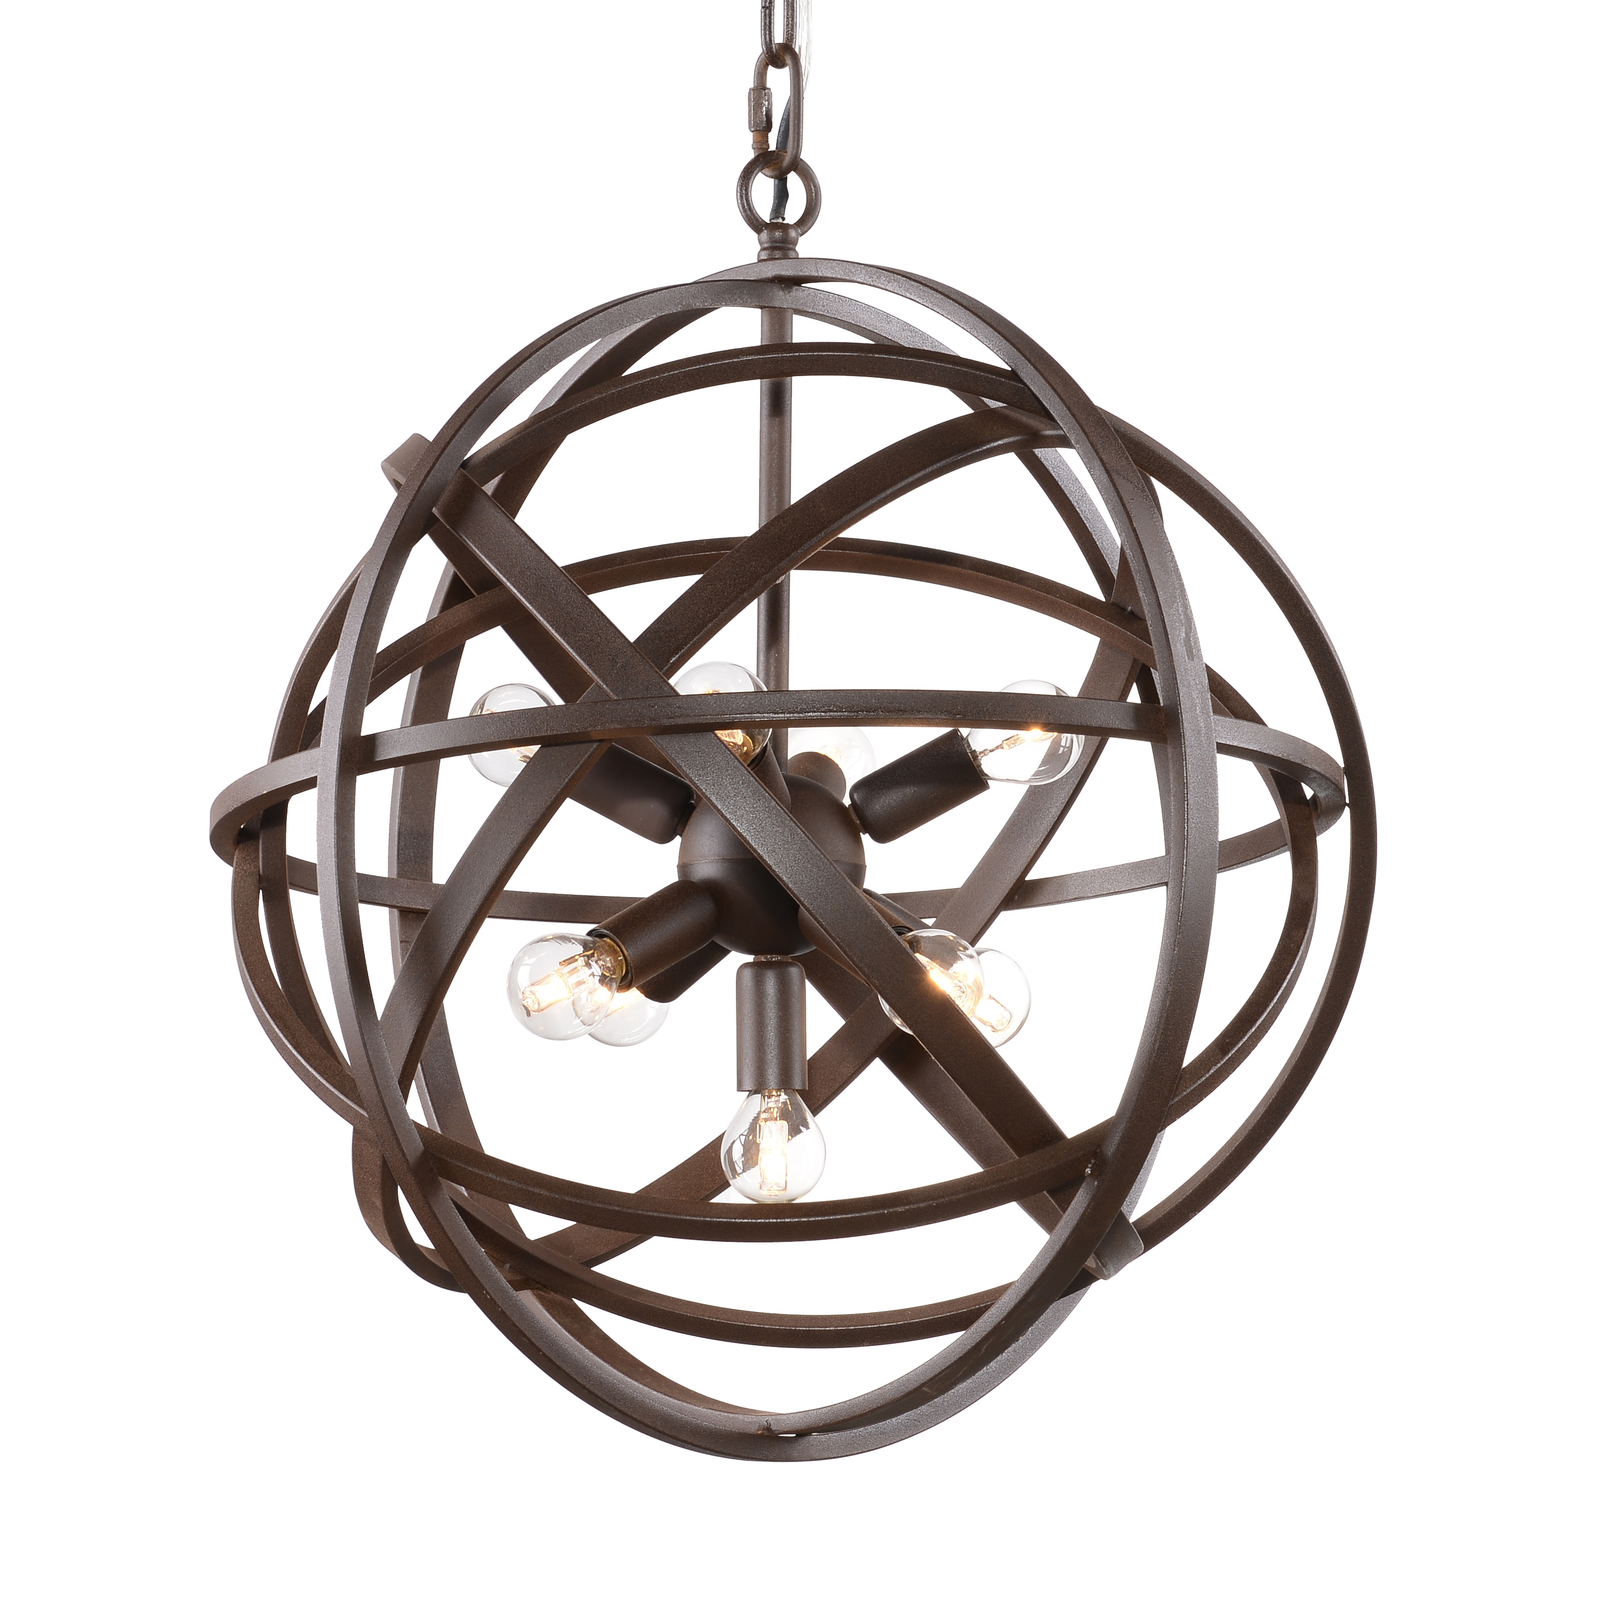 halo nest pendant light in Rouille (Coated Rust)